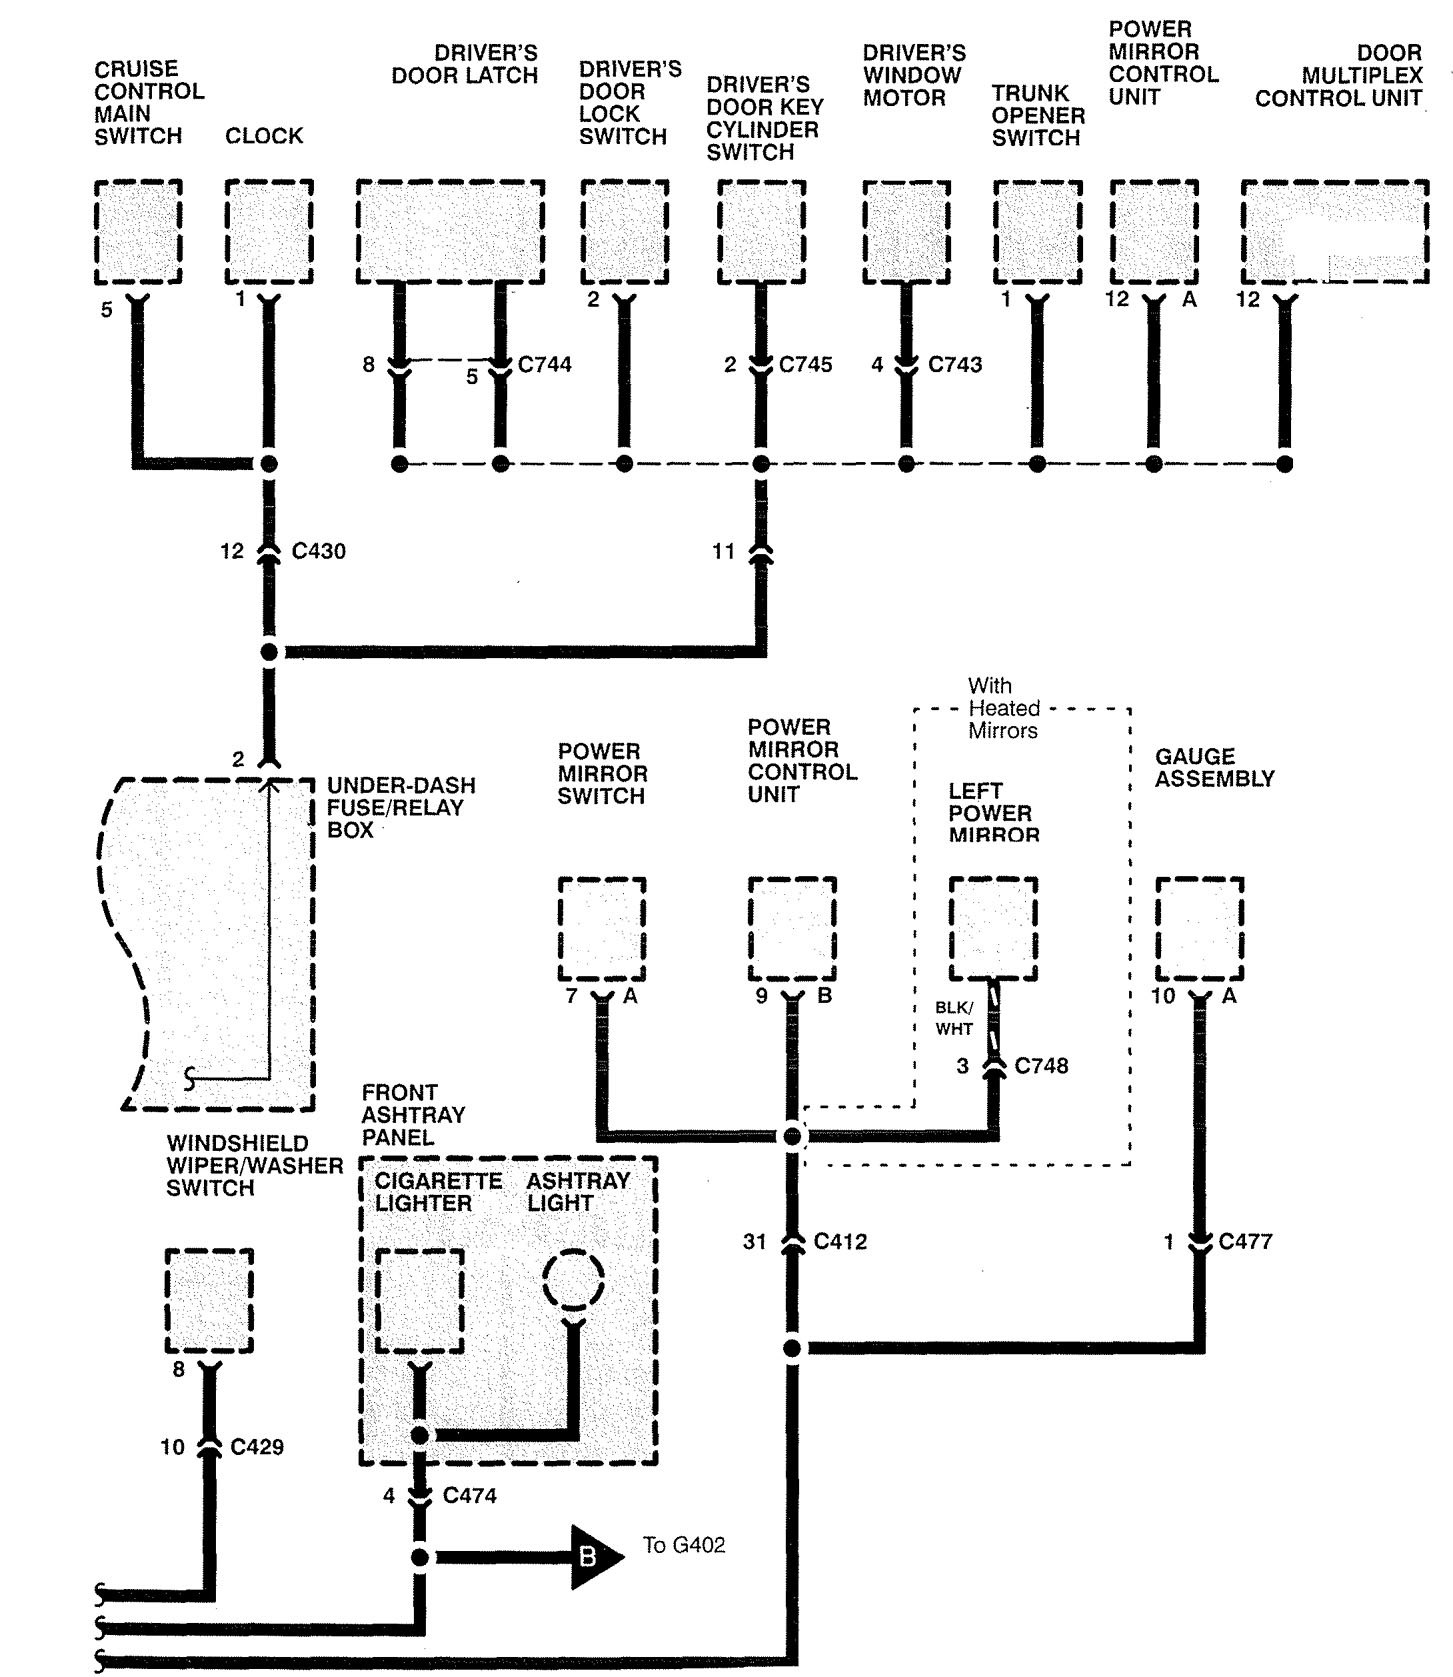 Wireing Diagram 3 2 Acura : 25 Wiring Diagram Images